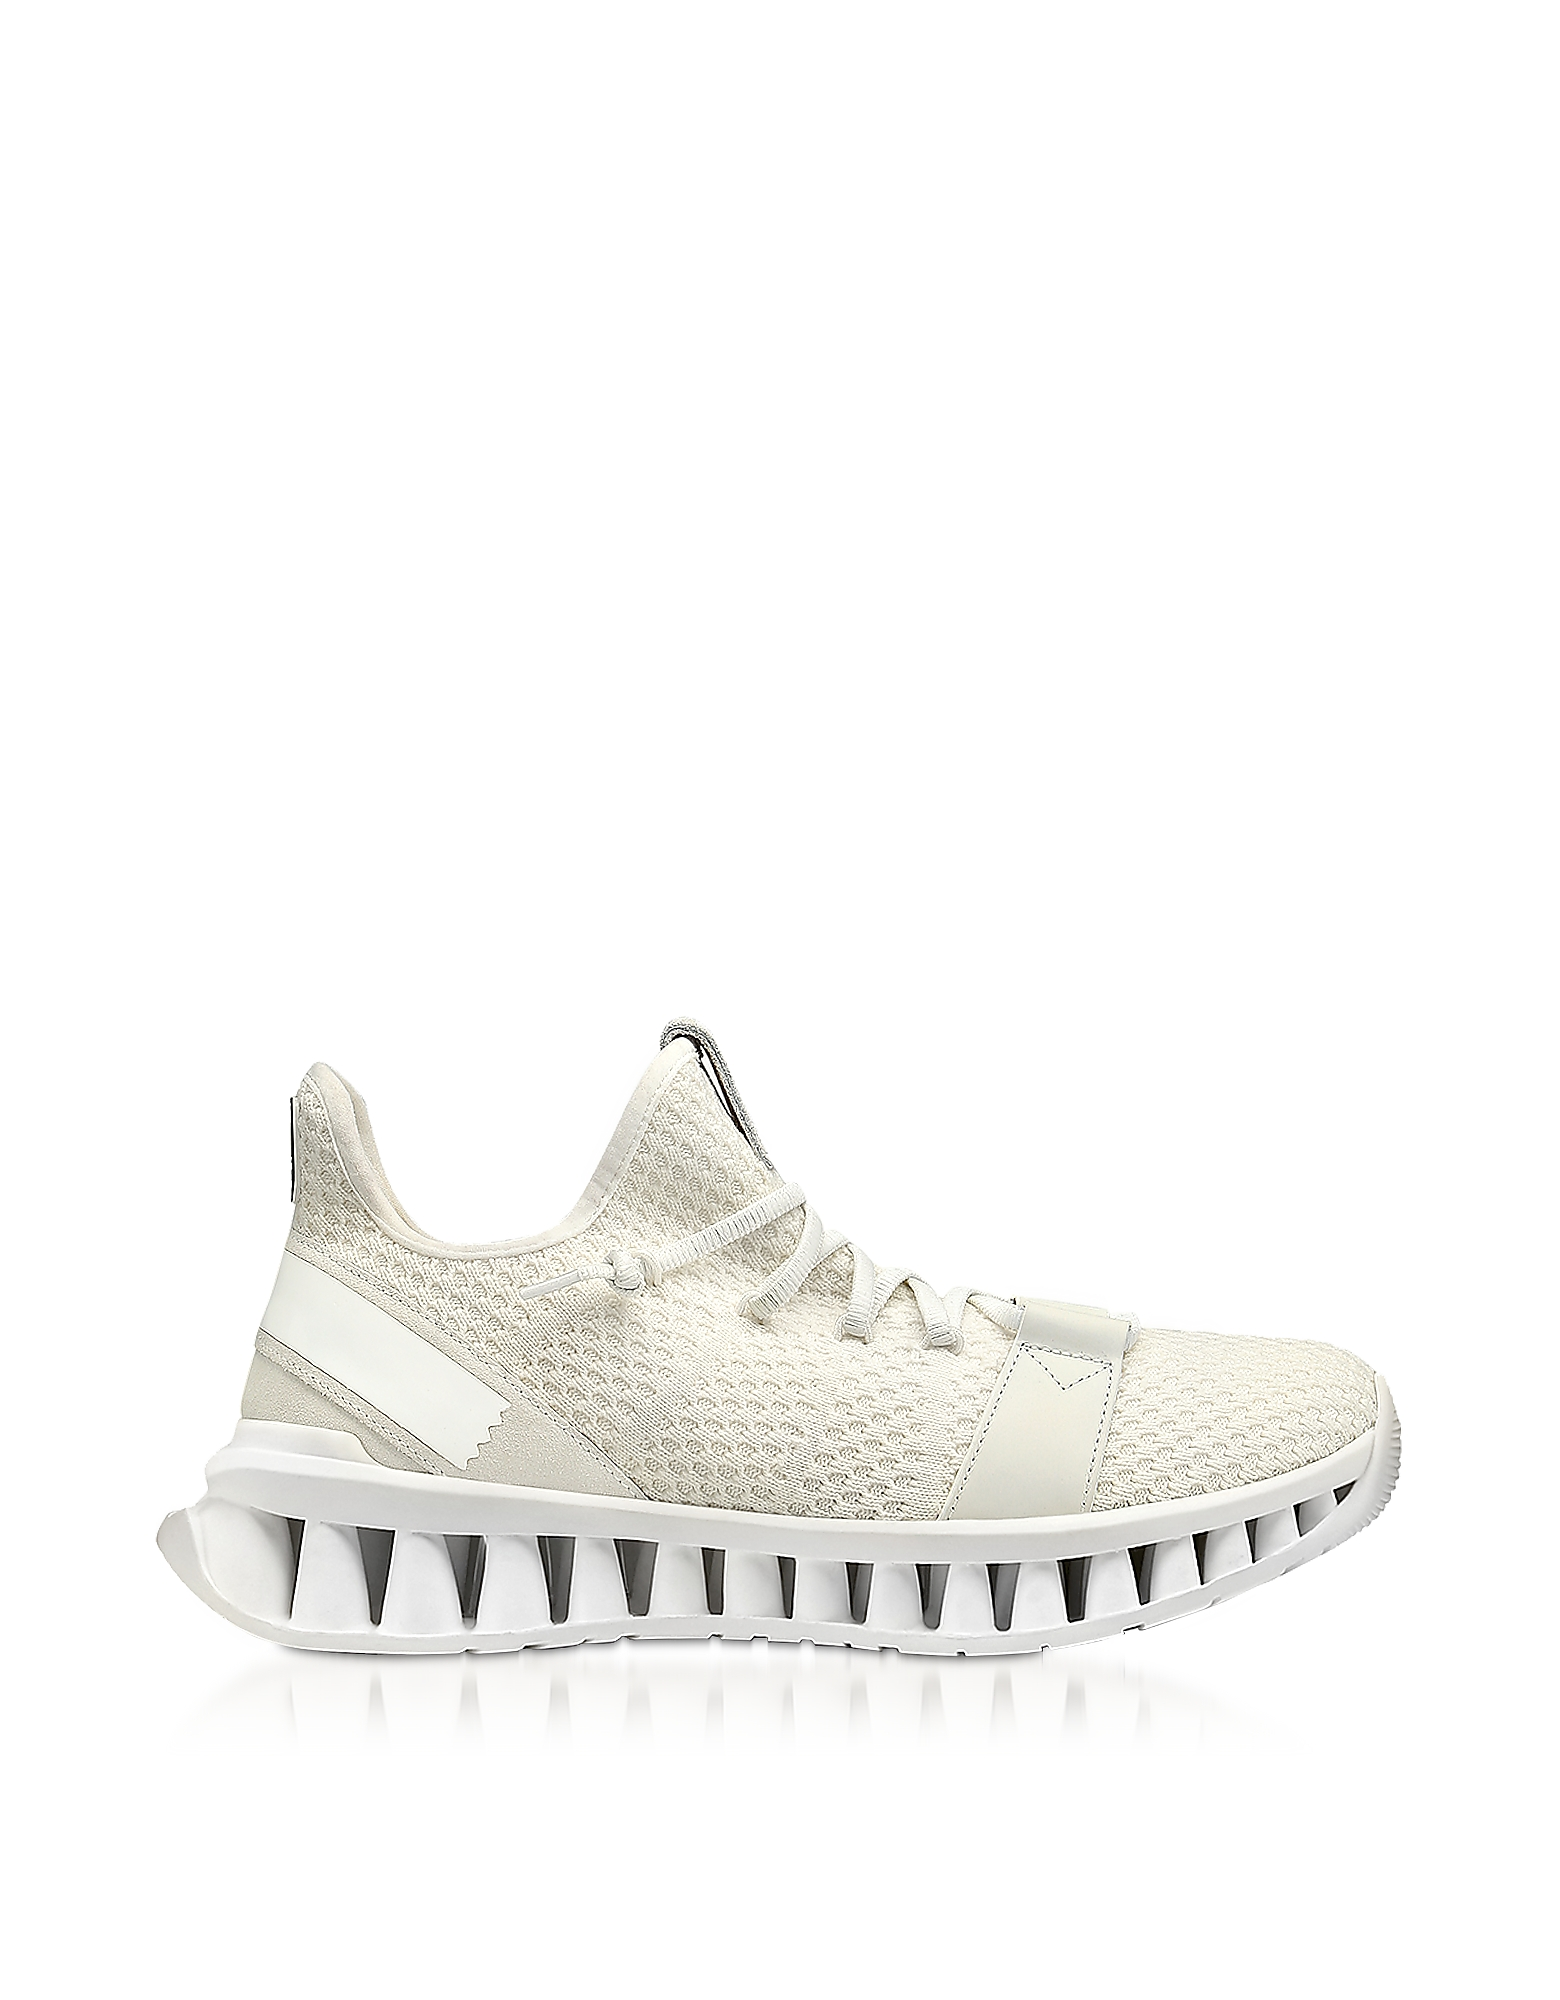 Ermenegildo Zegna Designer Shoes, White TECHMERINO A-Maze Sneakers